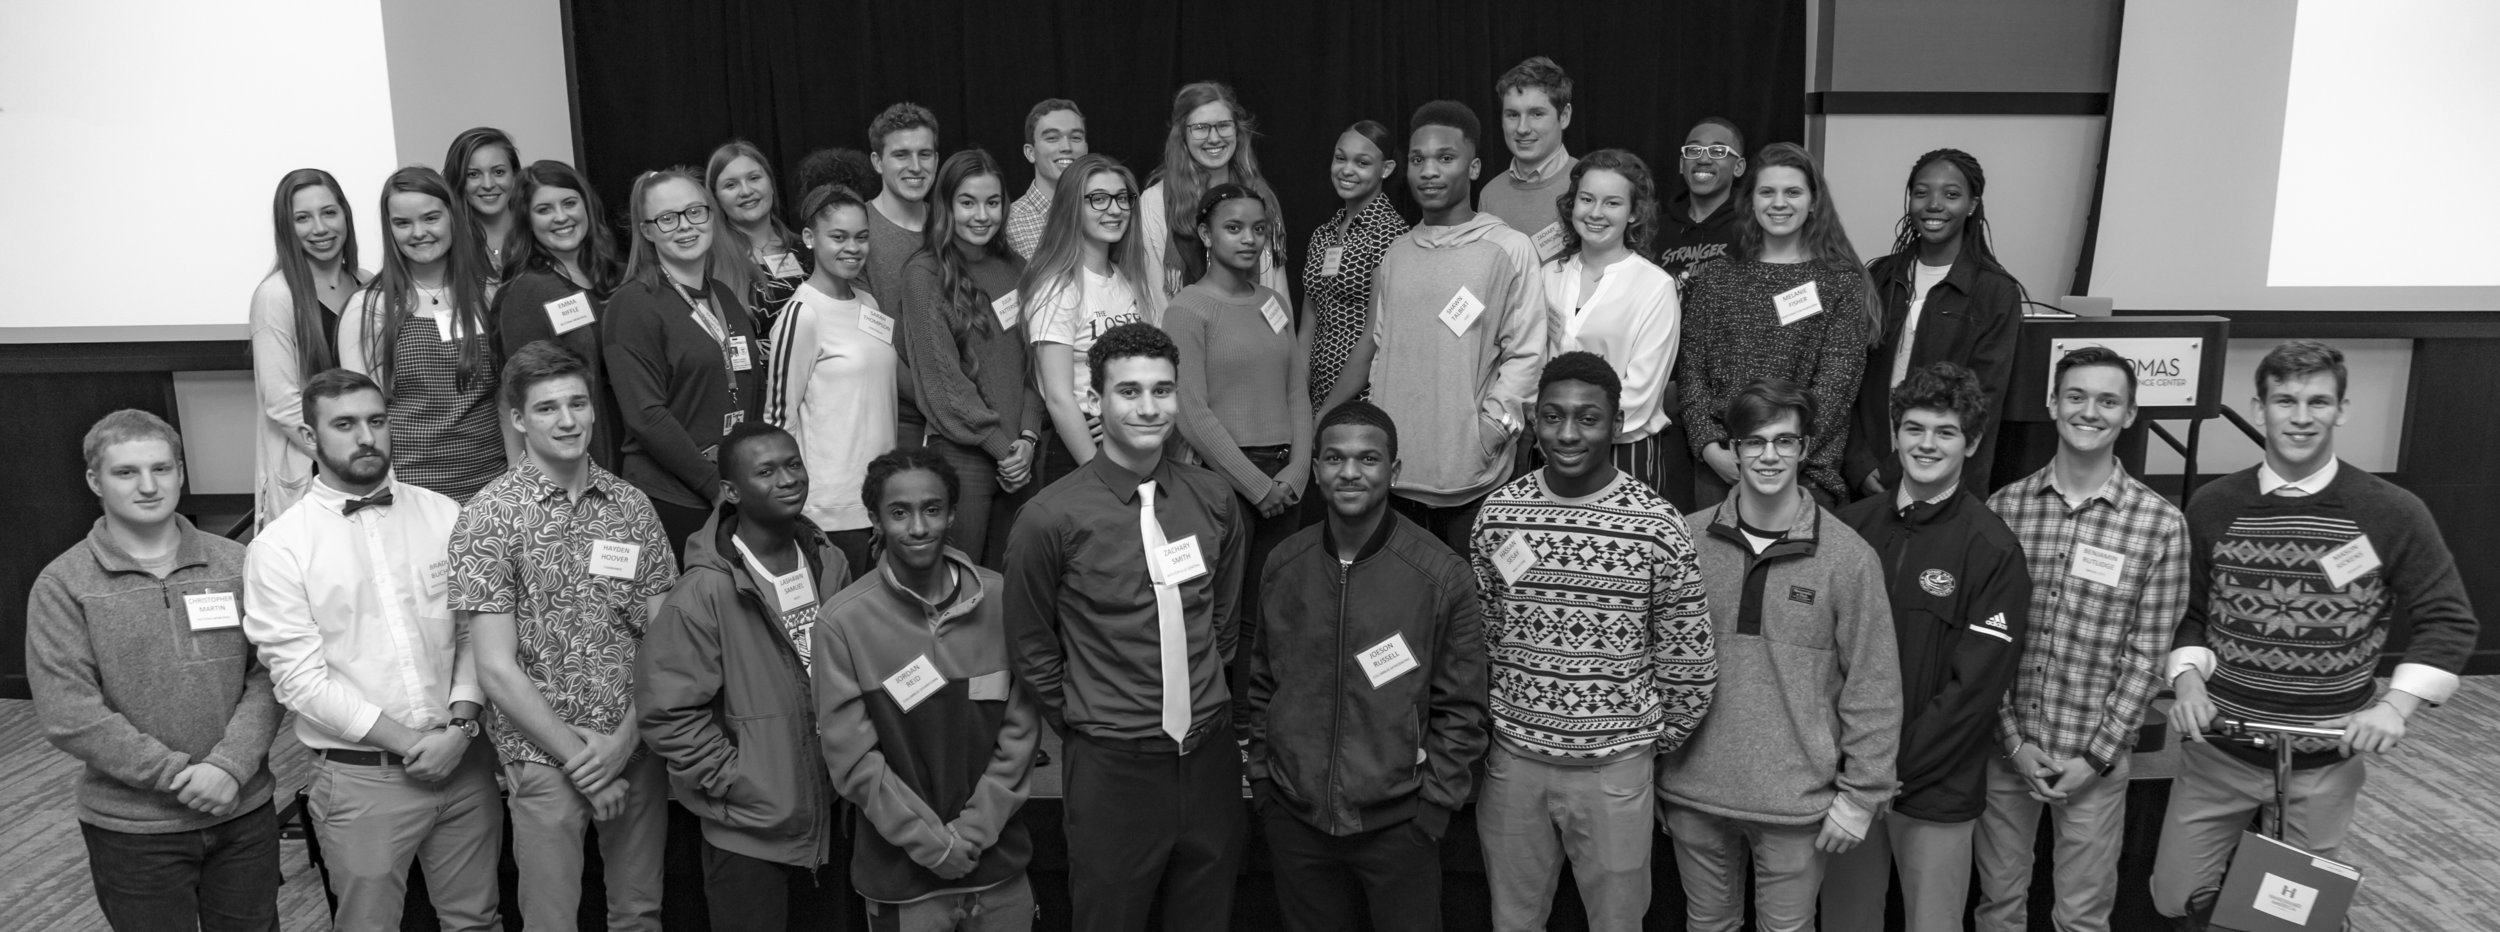 IMG_9089 R BW Official Team Pic 2019 32 of 36 students.jpg